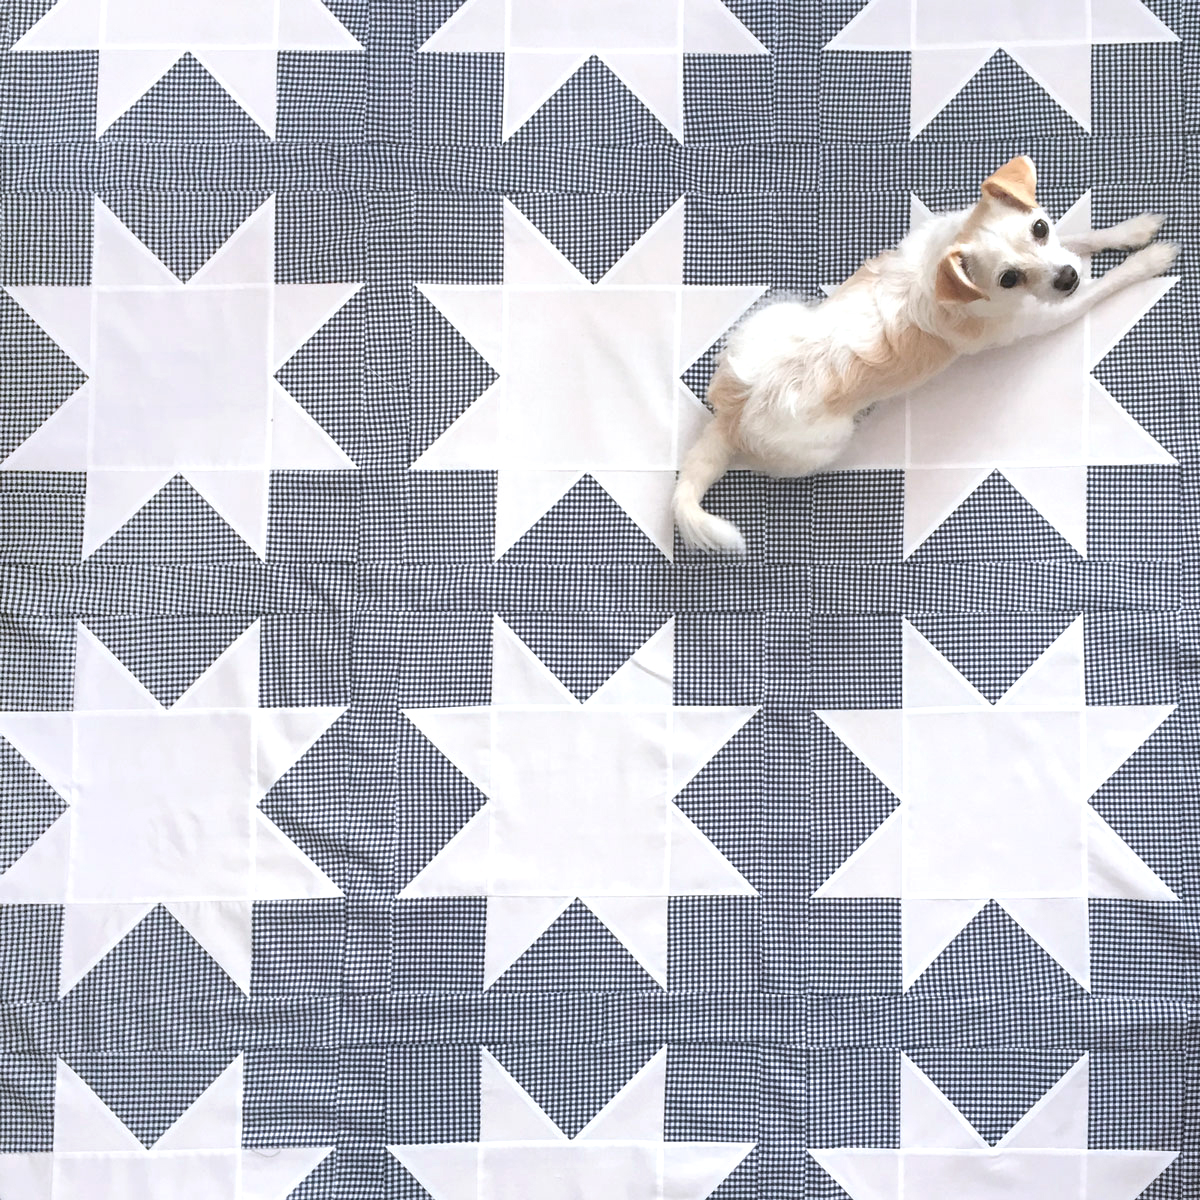 sawtooth star quilt